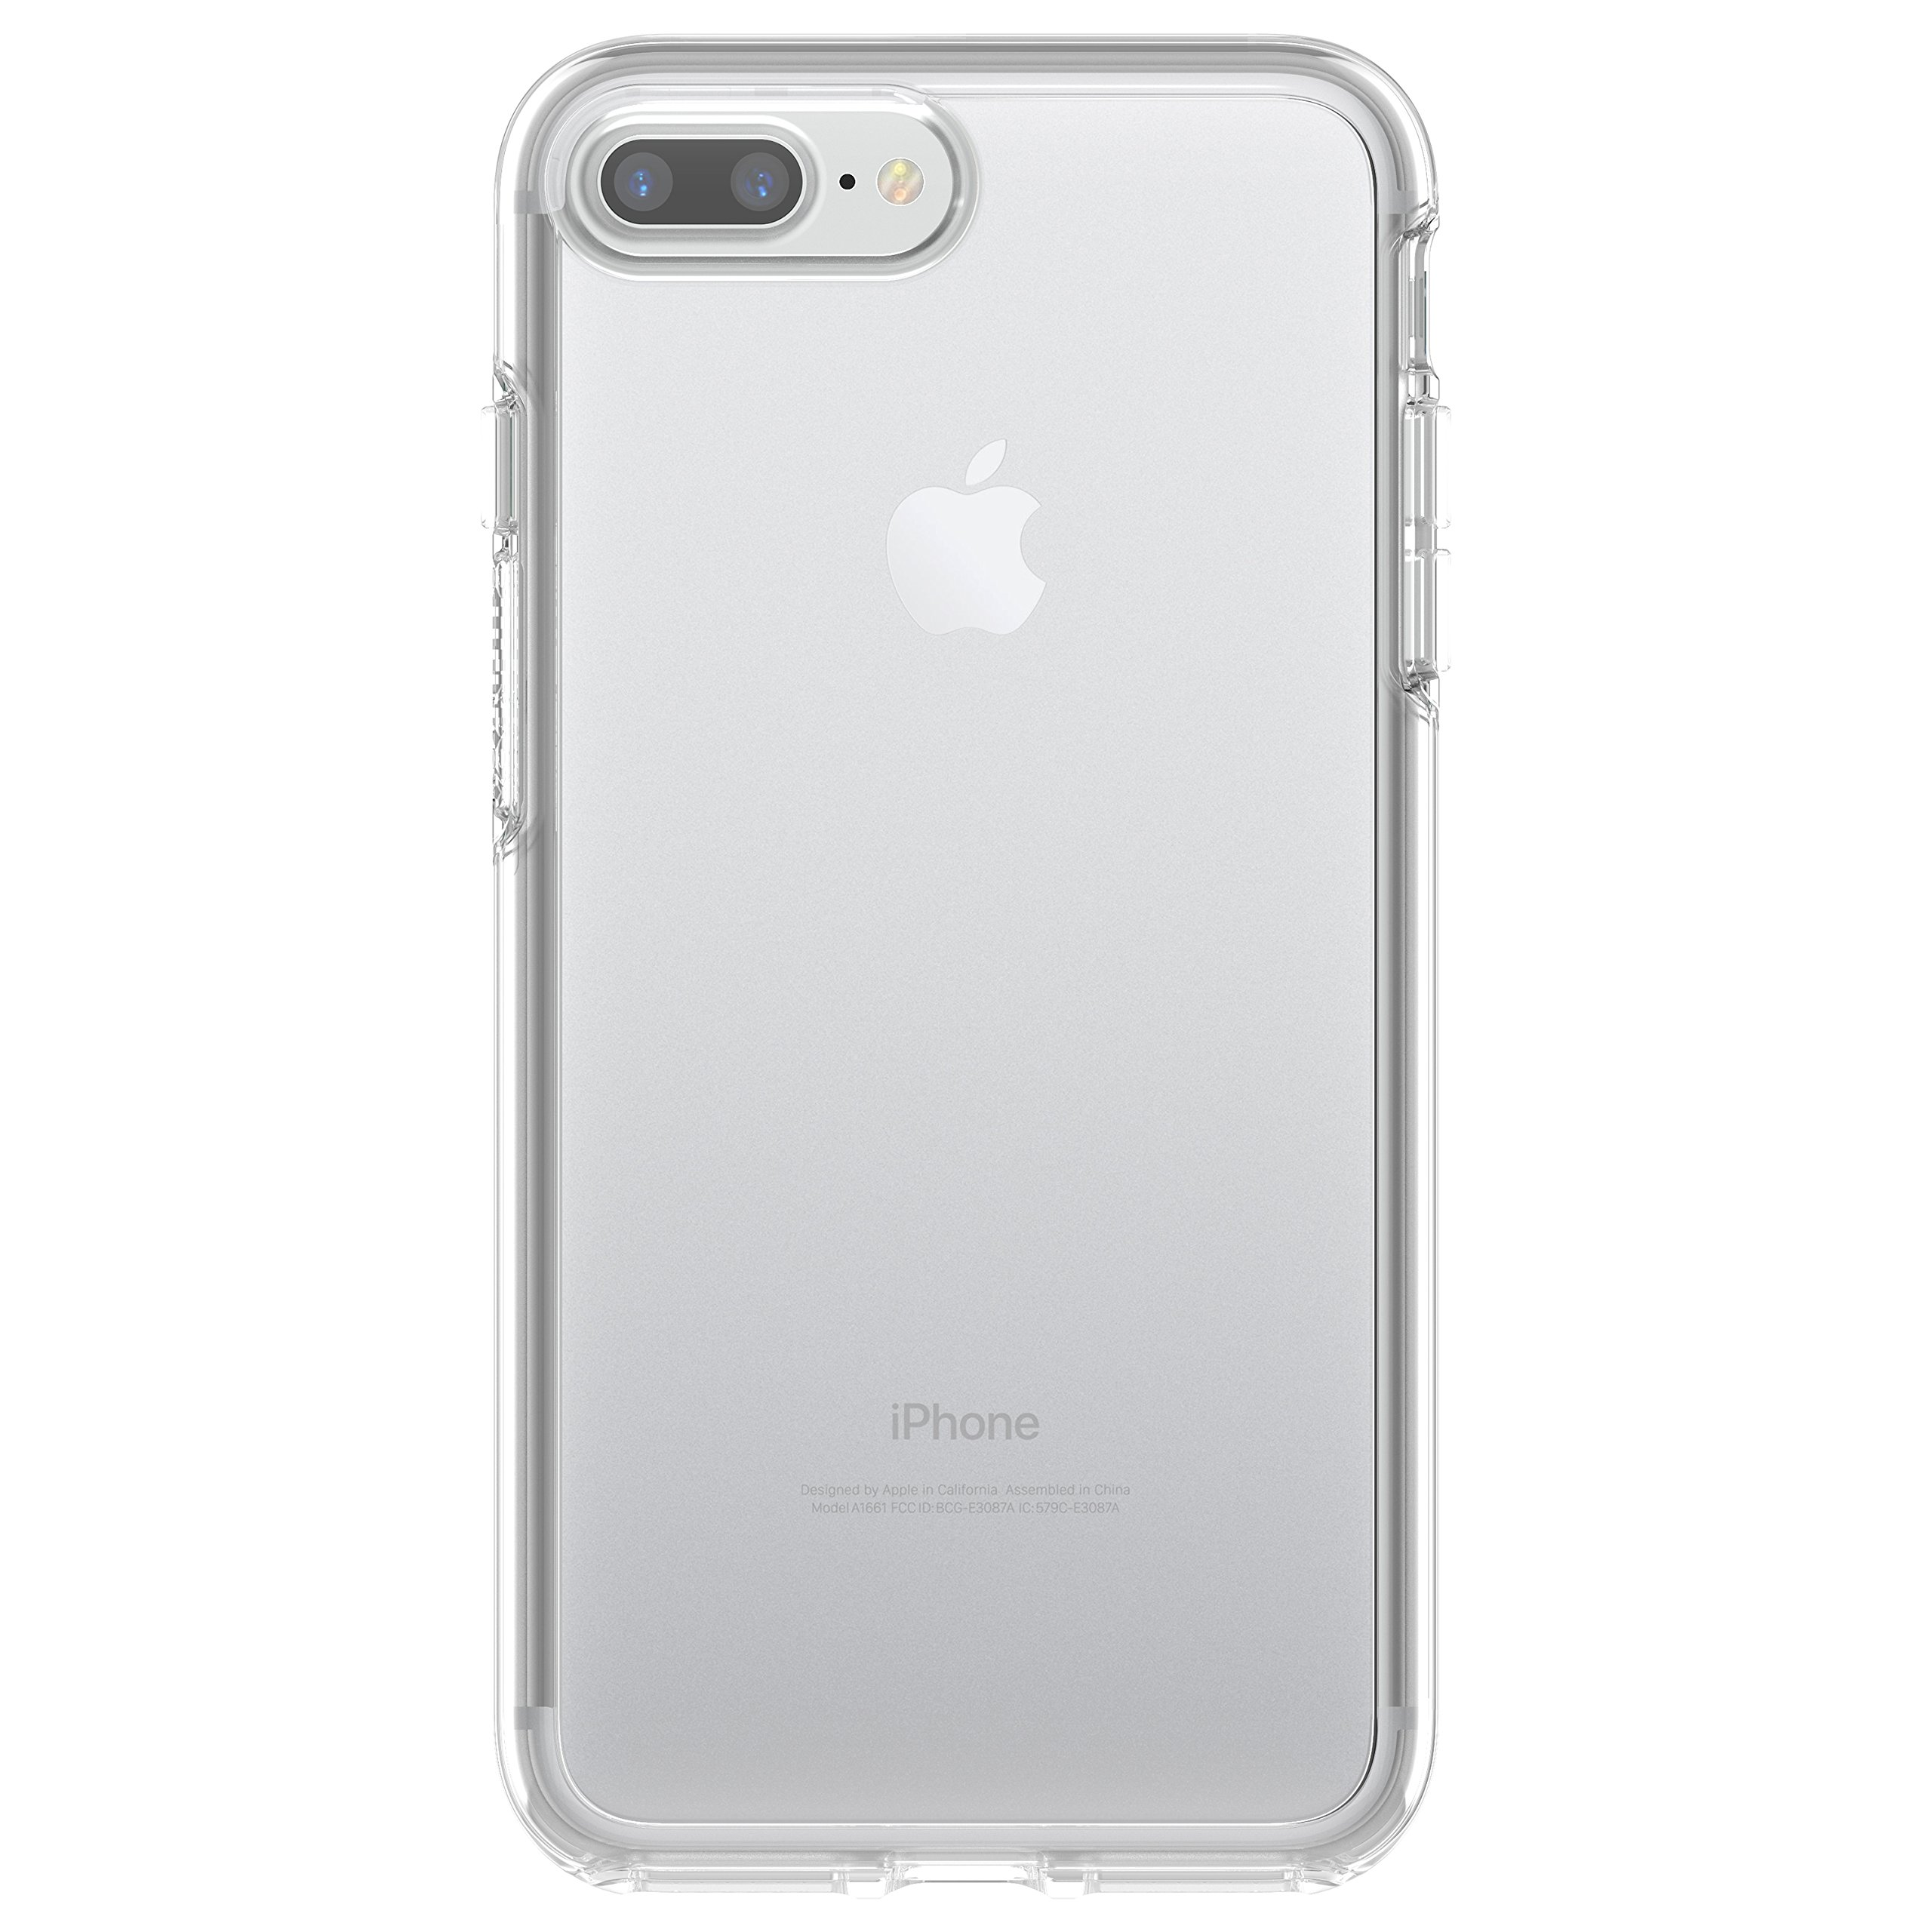 OtterBox SYMMETRY CLEAR SERIES Case for iPhone 7 Plus (ONLY) - Retail Packaging - CLEAR (CLEAR/CLEAR)